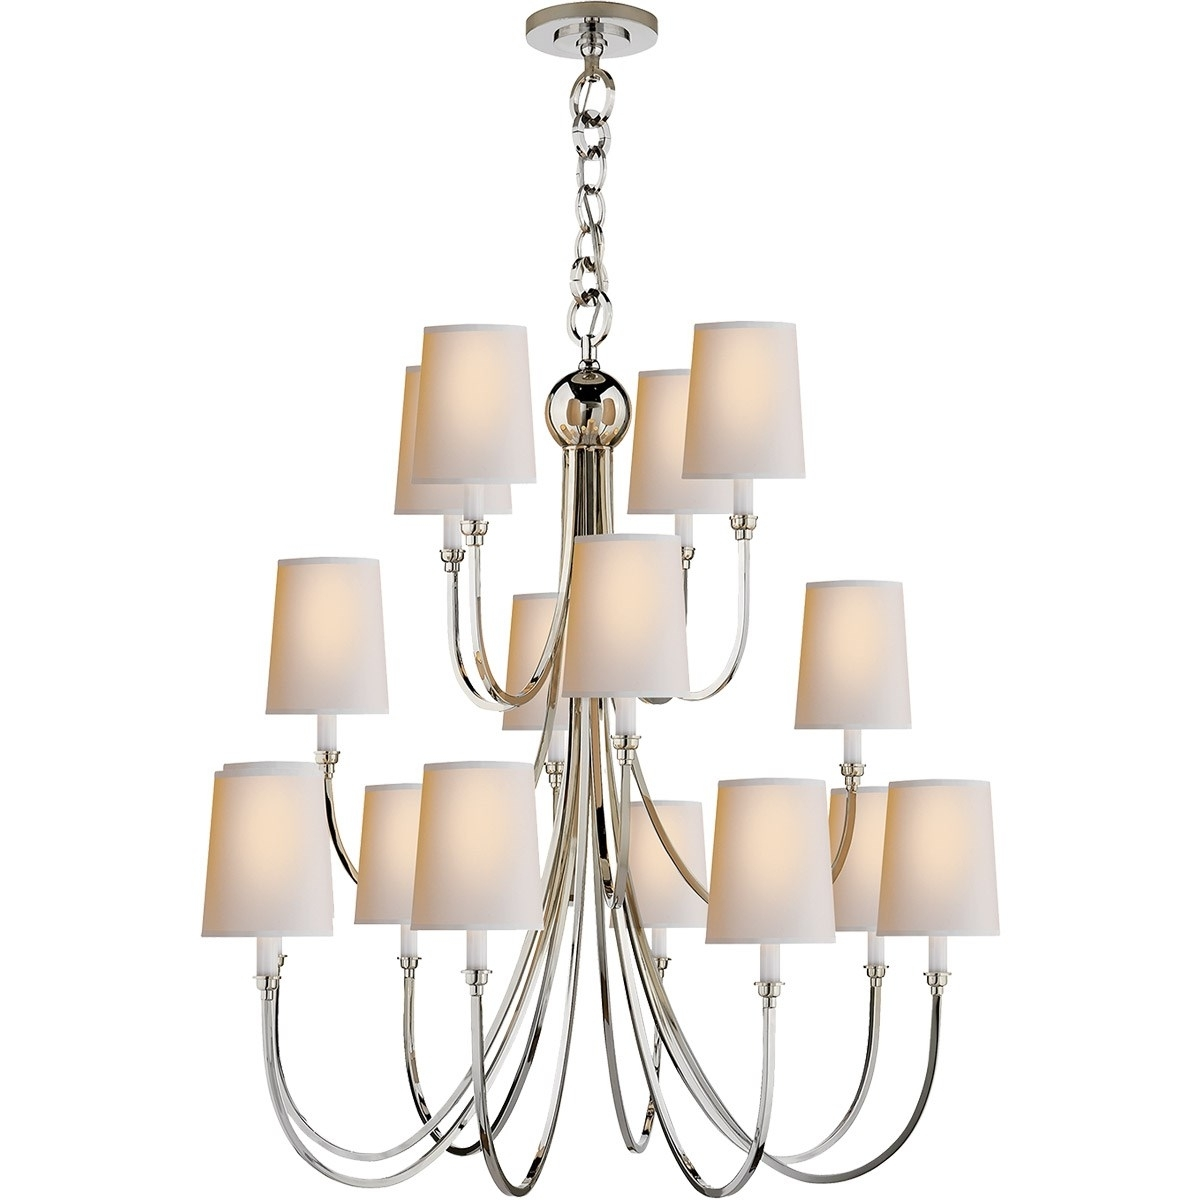 Newest Extra Large Chandelier Lighting Pertaining To Visual Comfort Tob5019 Reed 16 Light Extra Large Chandelier With (View 12 of 15)